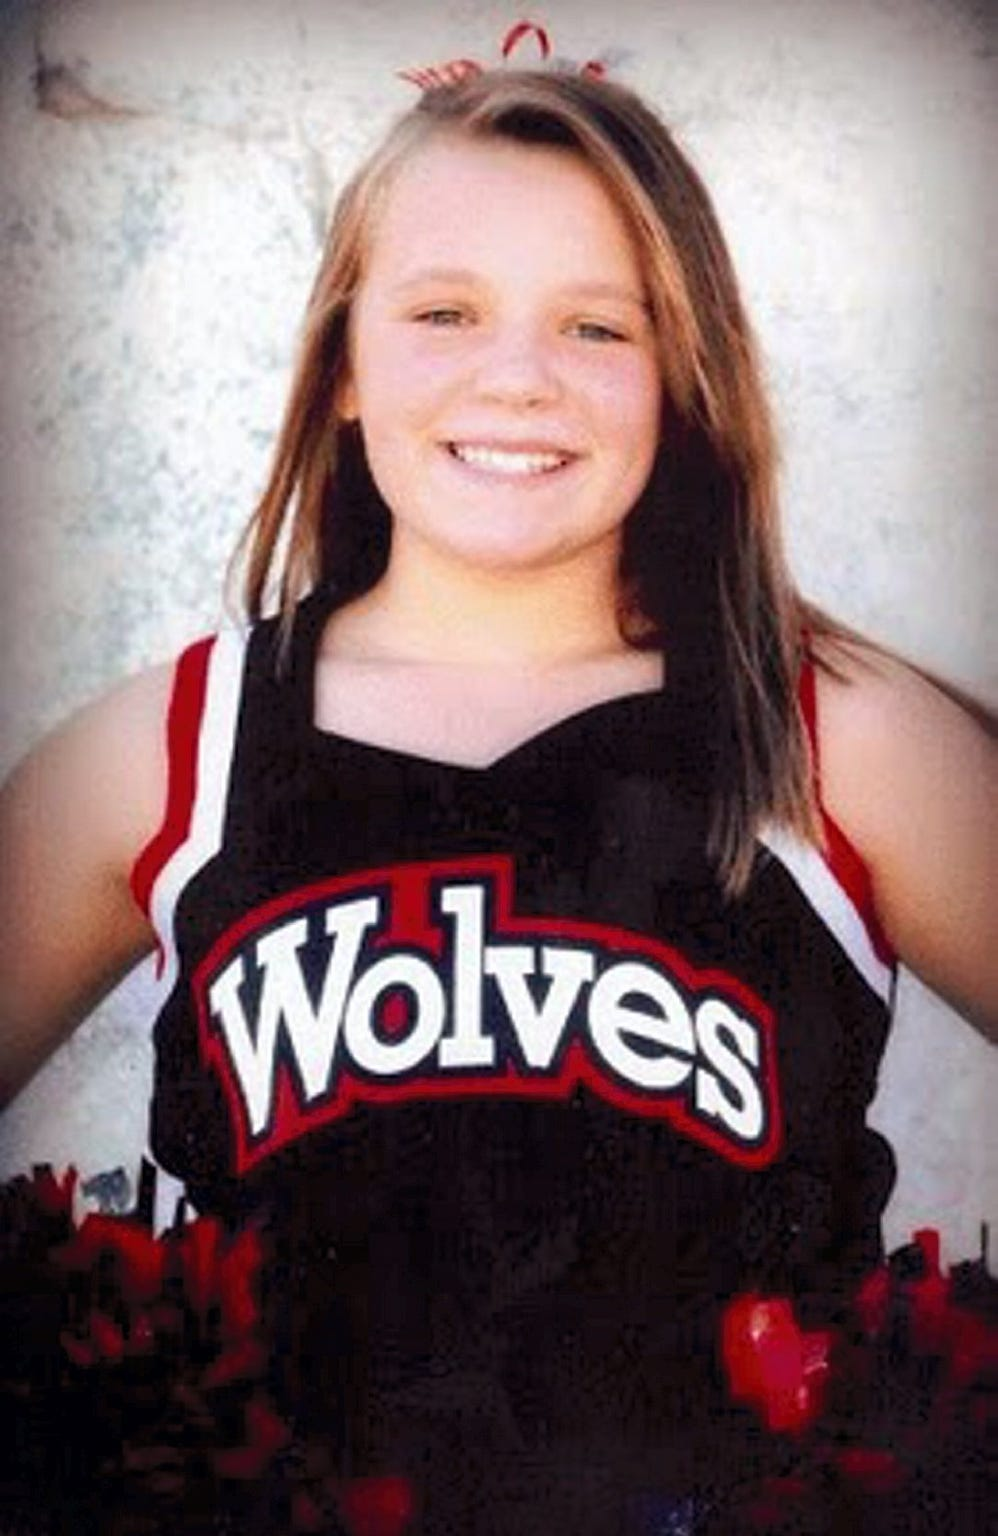 This photo of Colorado Middle School student Hailey Dunn became iconic during the search for the missing 13-year-old in 2011, appearing on billboards and even nationally TV shows. Her remains were found in March 2013, but her killer has yet to be found.